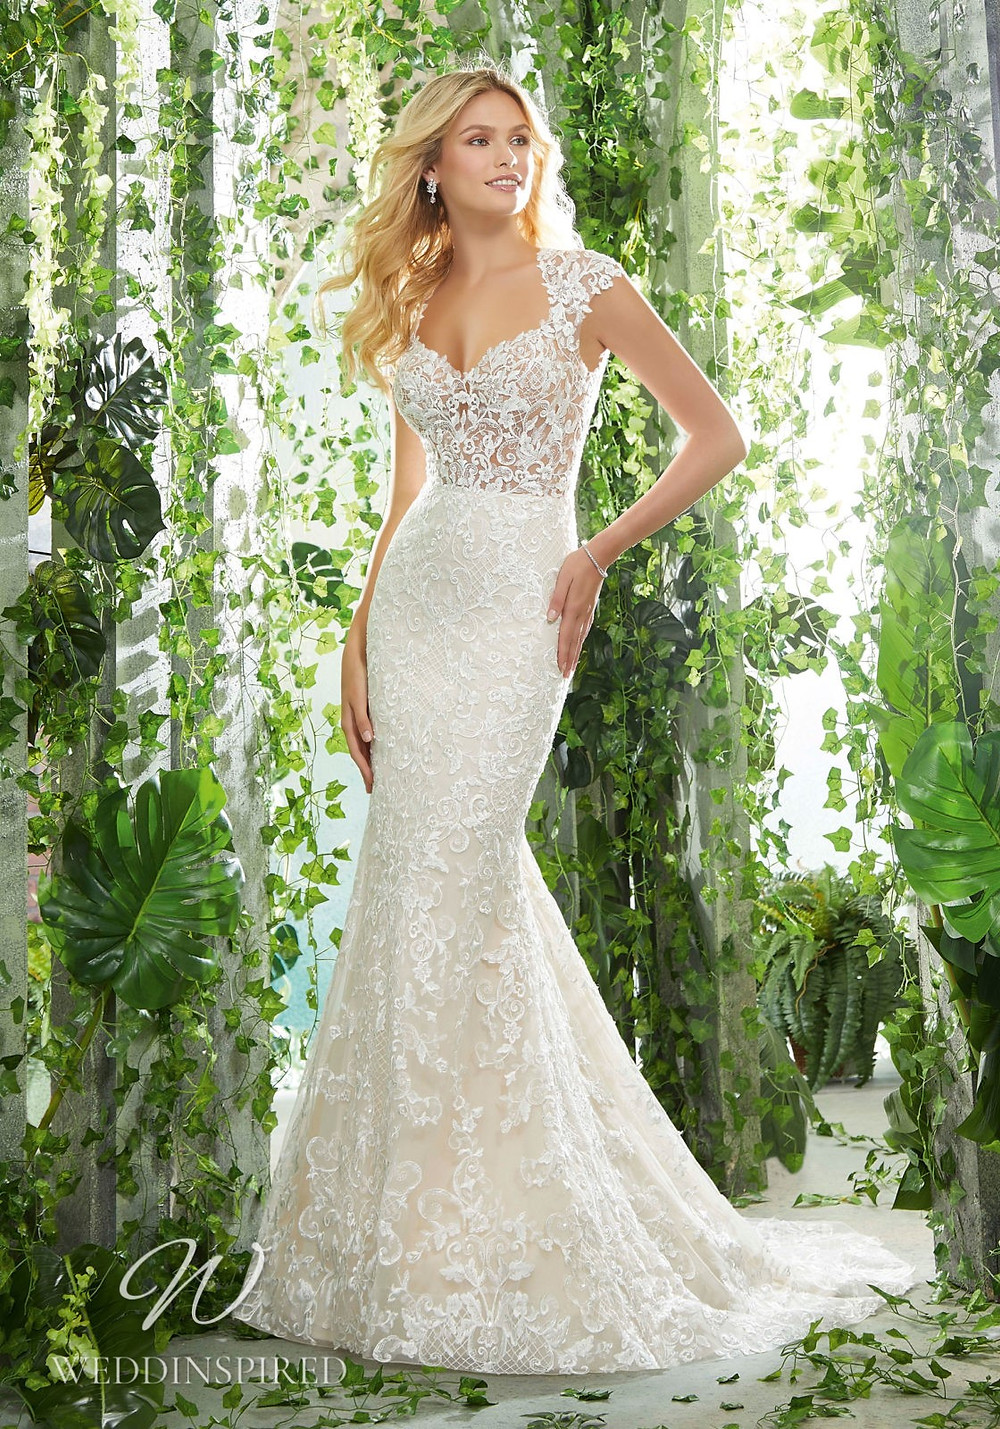 A Madeline Gardner lace mermaid wedding dress with cap sleeves